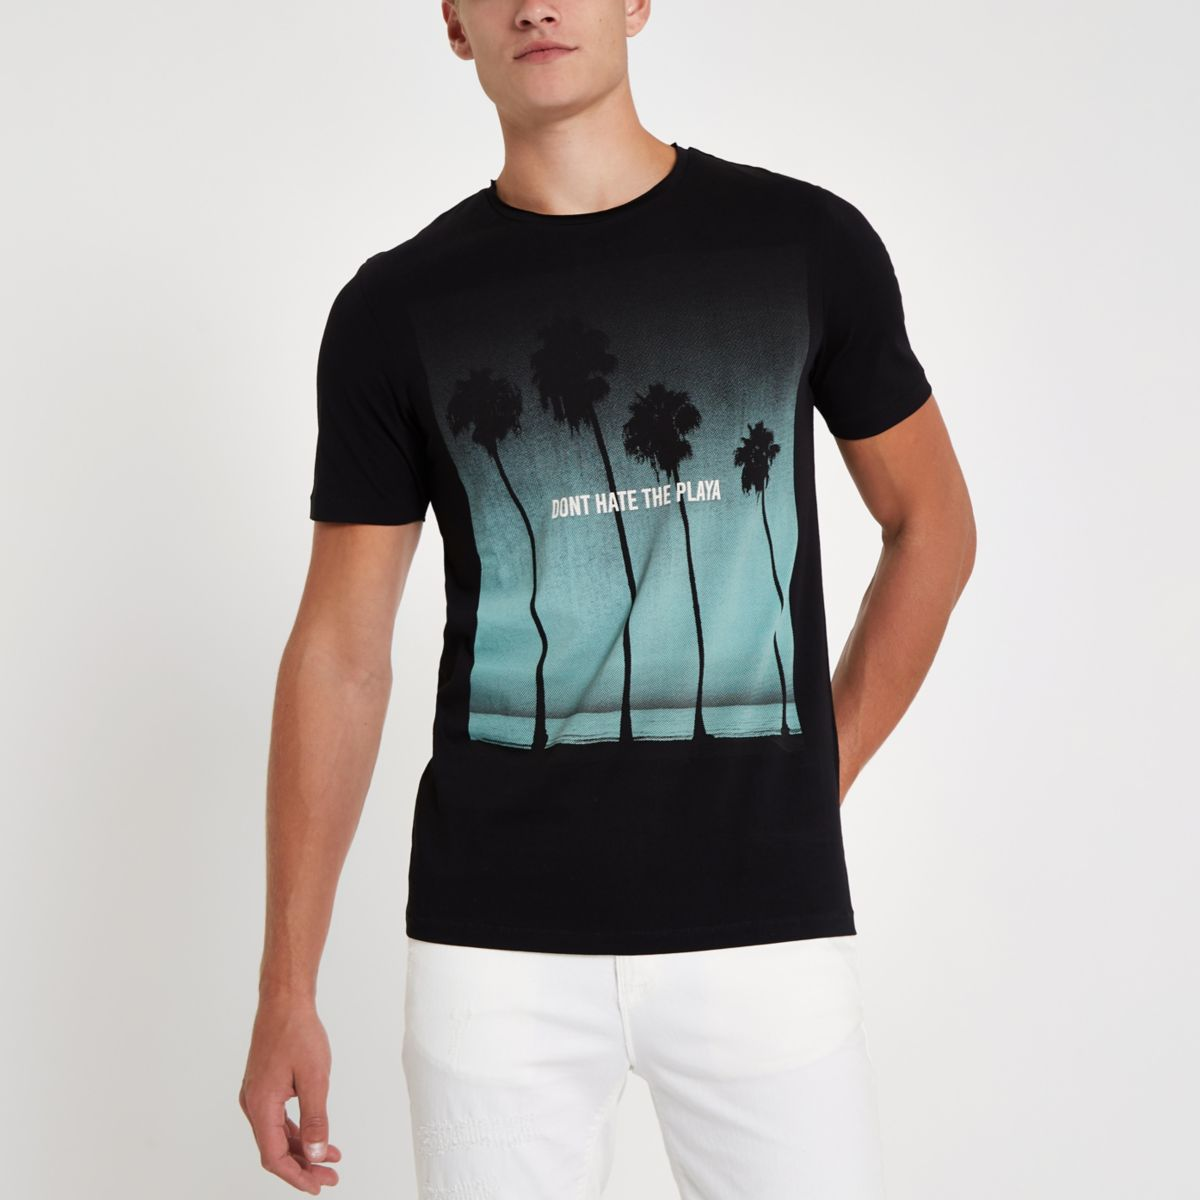 River Island Mens Jack and Jones Premium Black beachT-shirt Jack & Jones Outlet 100% Guaranteed Cheap Great Deals Manchester Cheap Online Buy Cheap Finishline 2018 New Sale Online EdVvdBUQ4